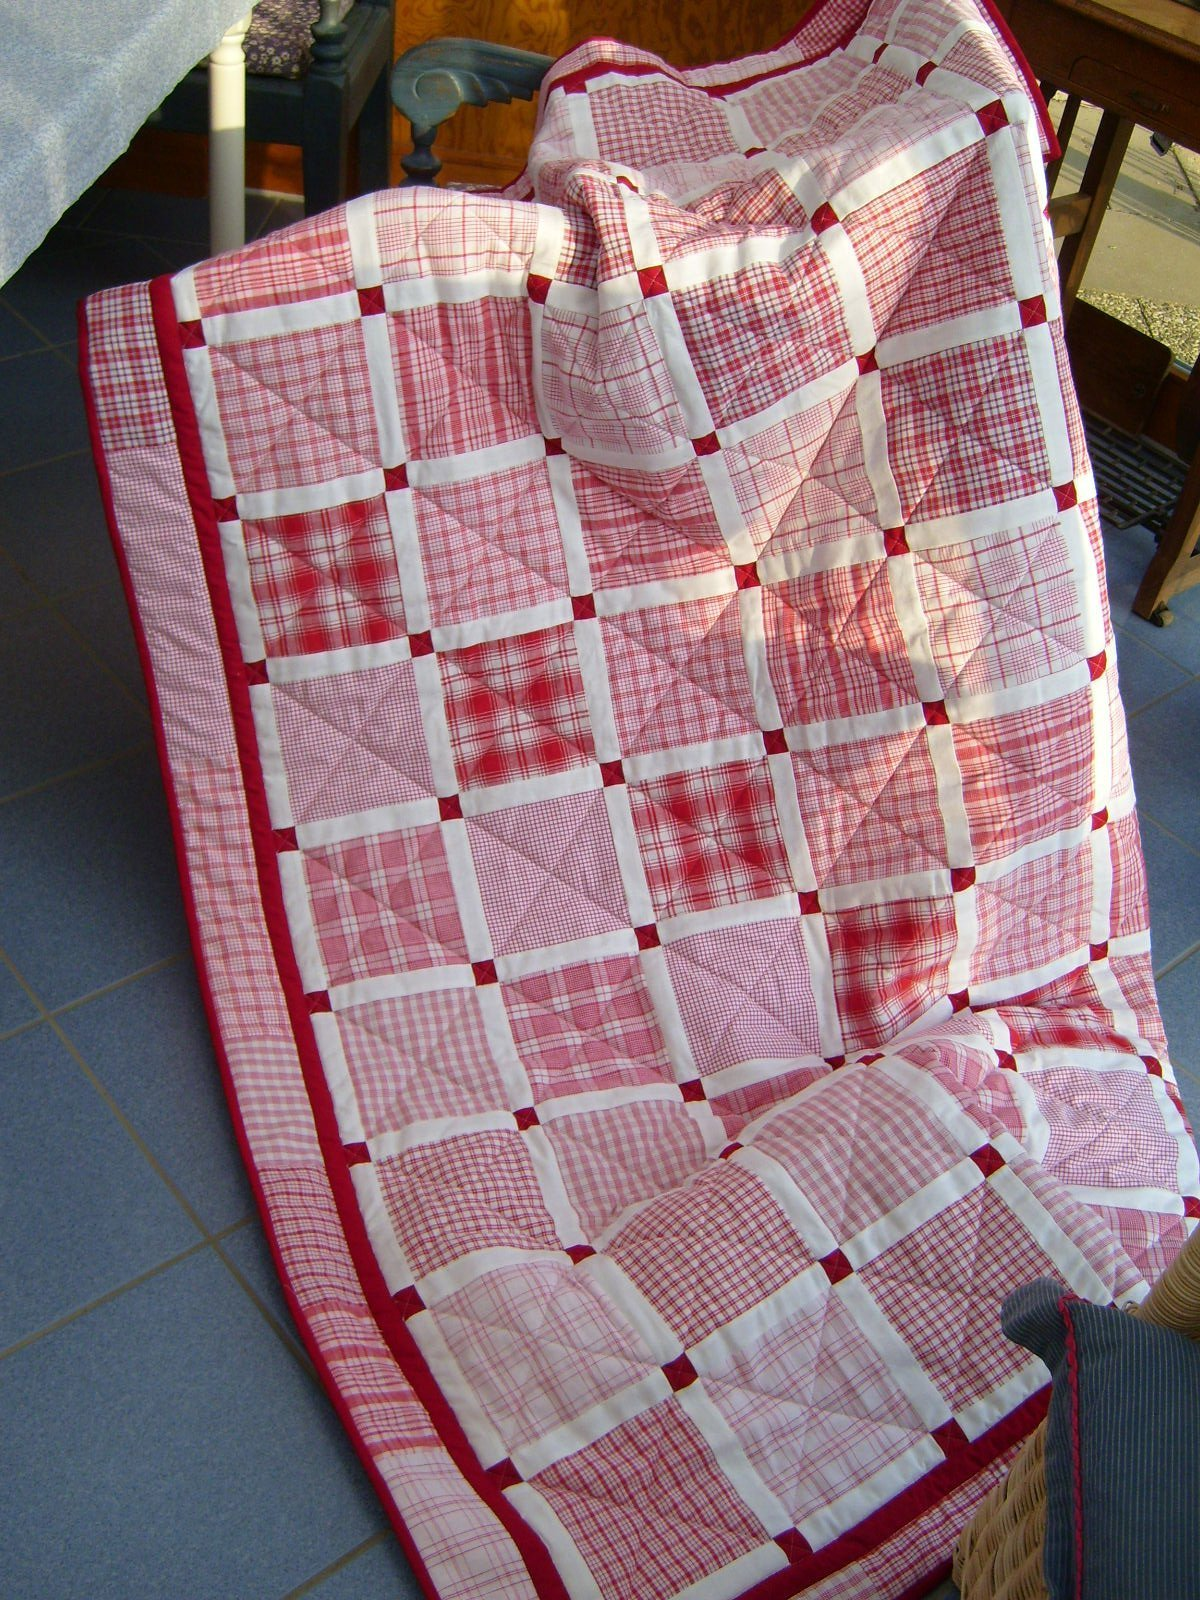 BERNINA -Mitmachaktion: Red and White Quilts